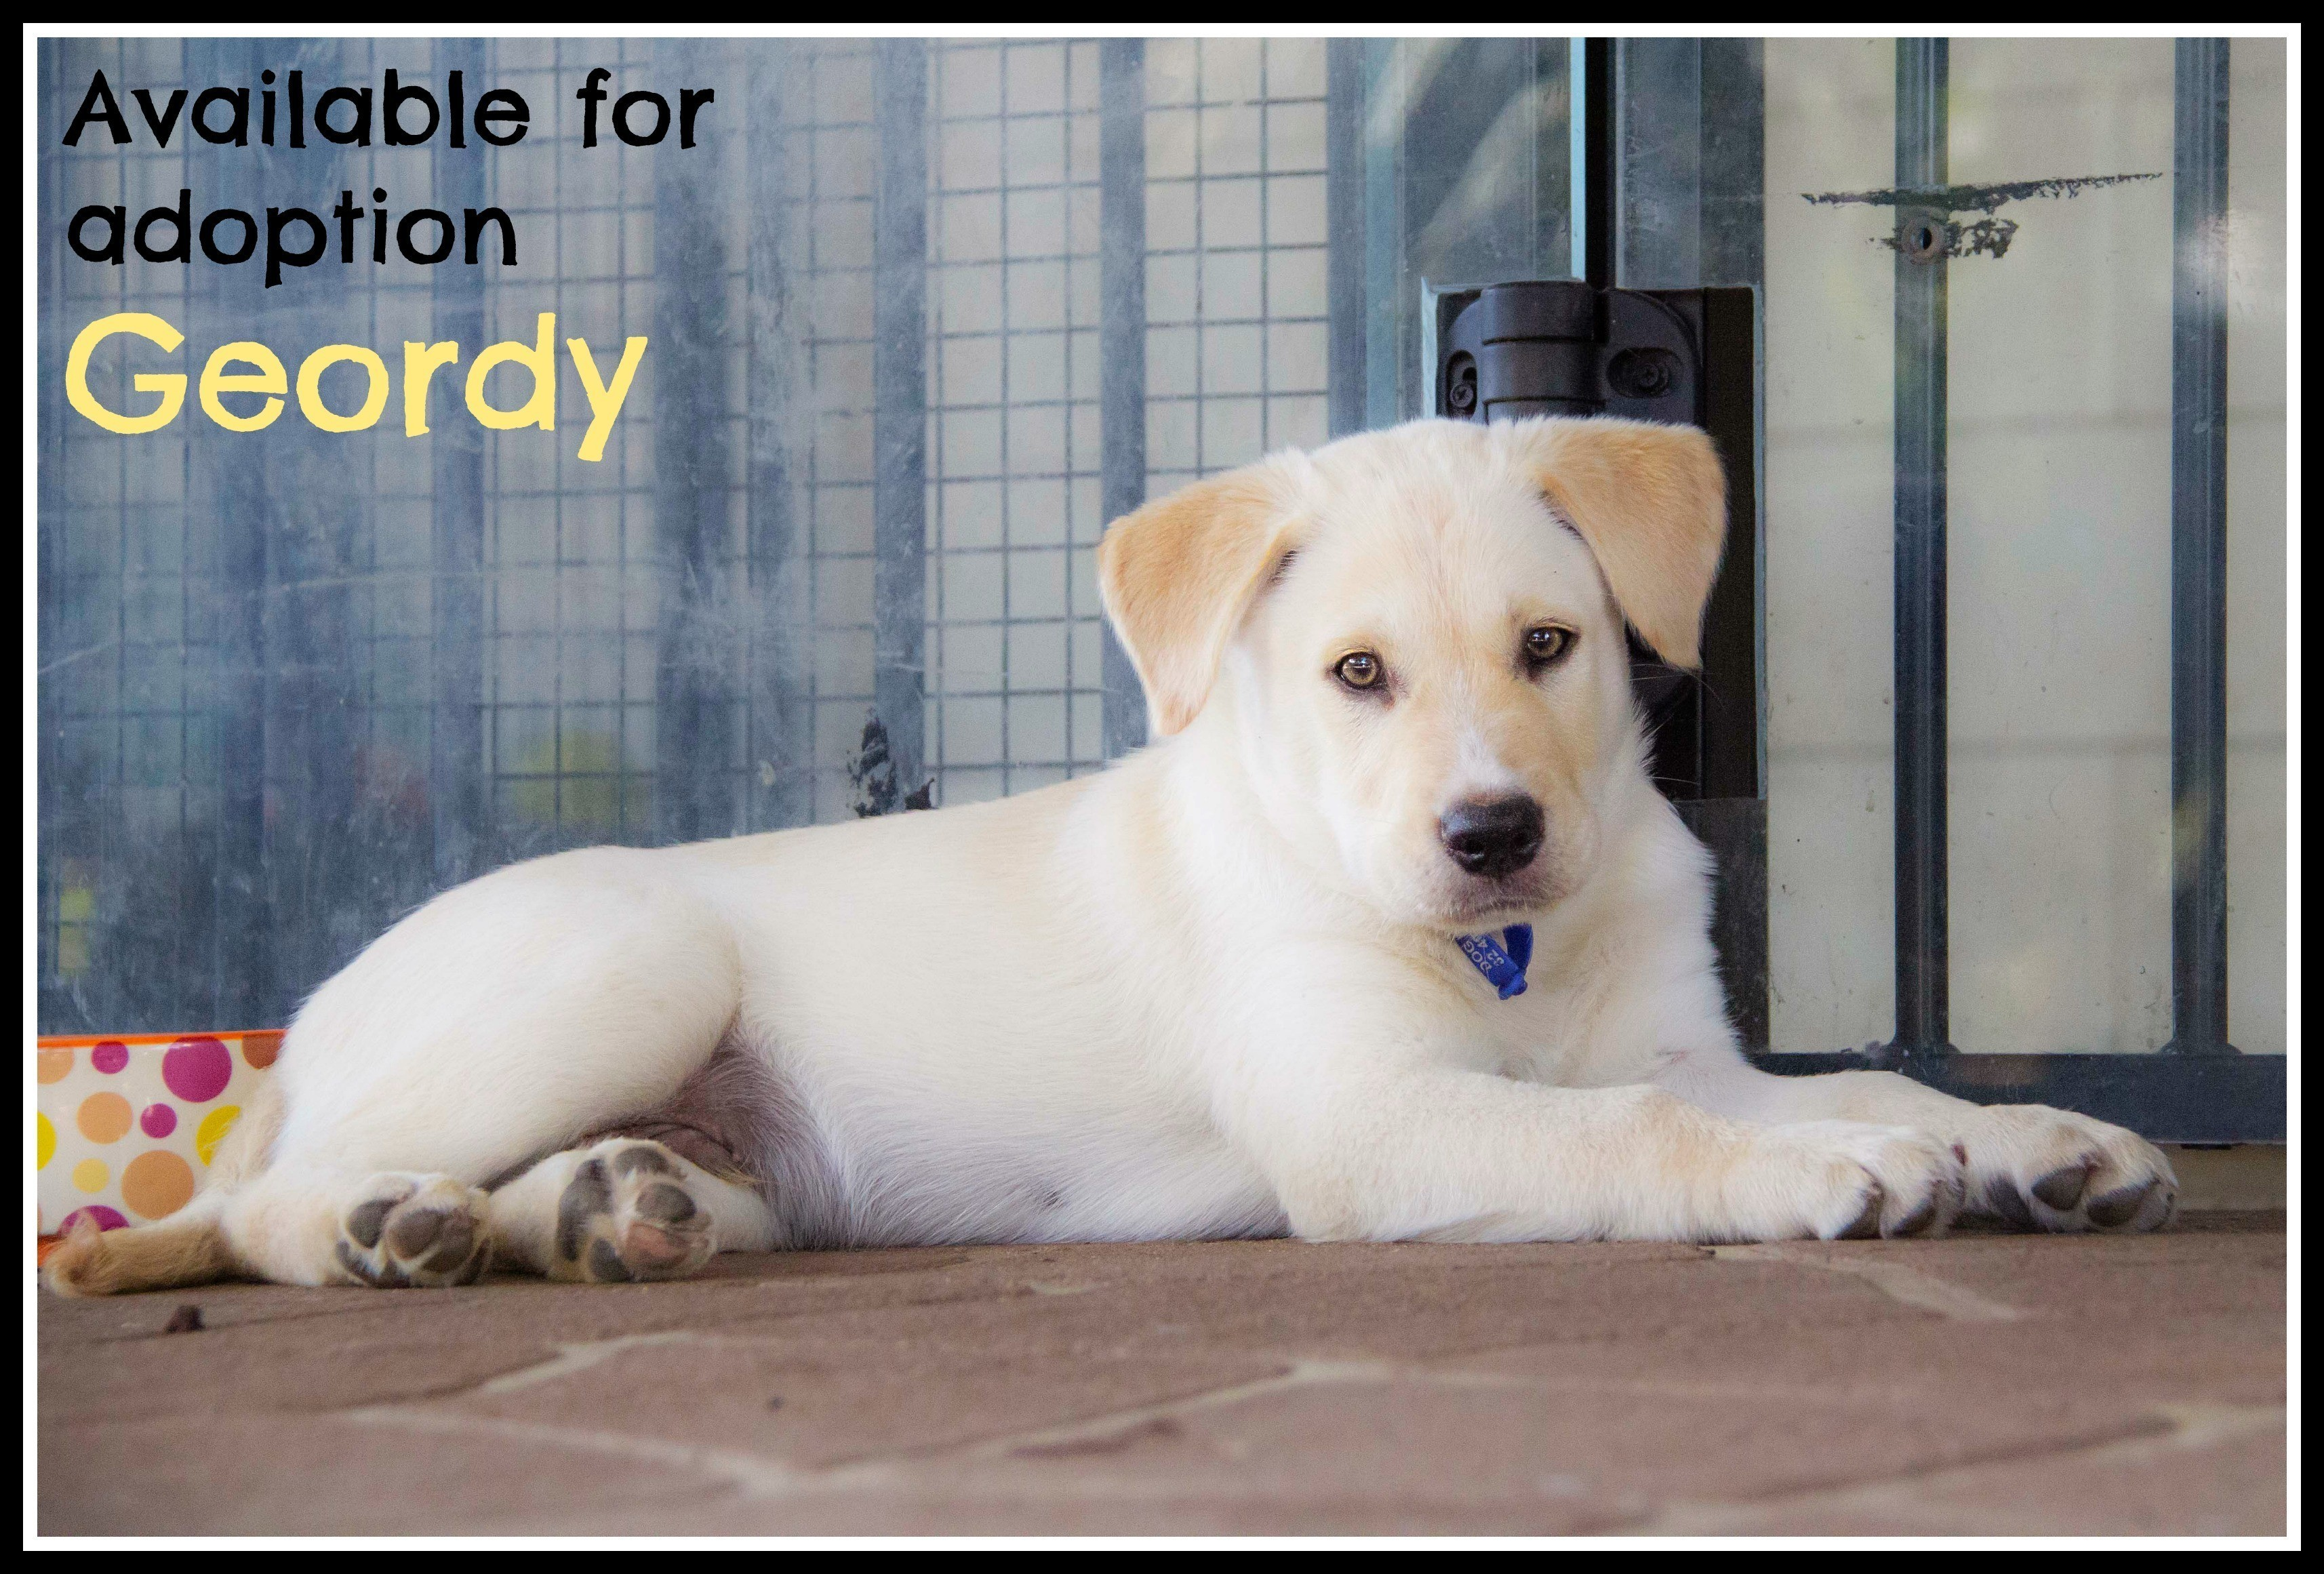 Geordy Labrador X Goldie Puppy Trial 14 5 16 Large Male Golden Retriever X Labrador Mix Dog In Nsw Petrescue